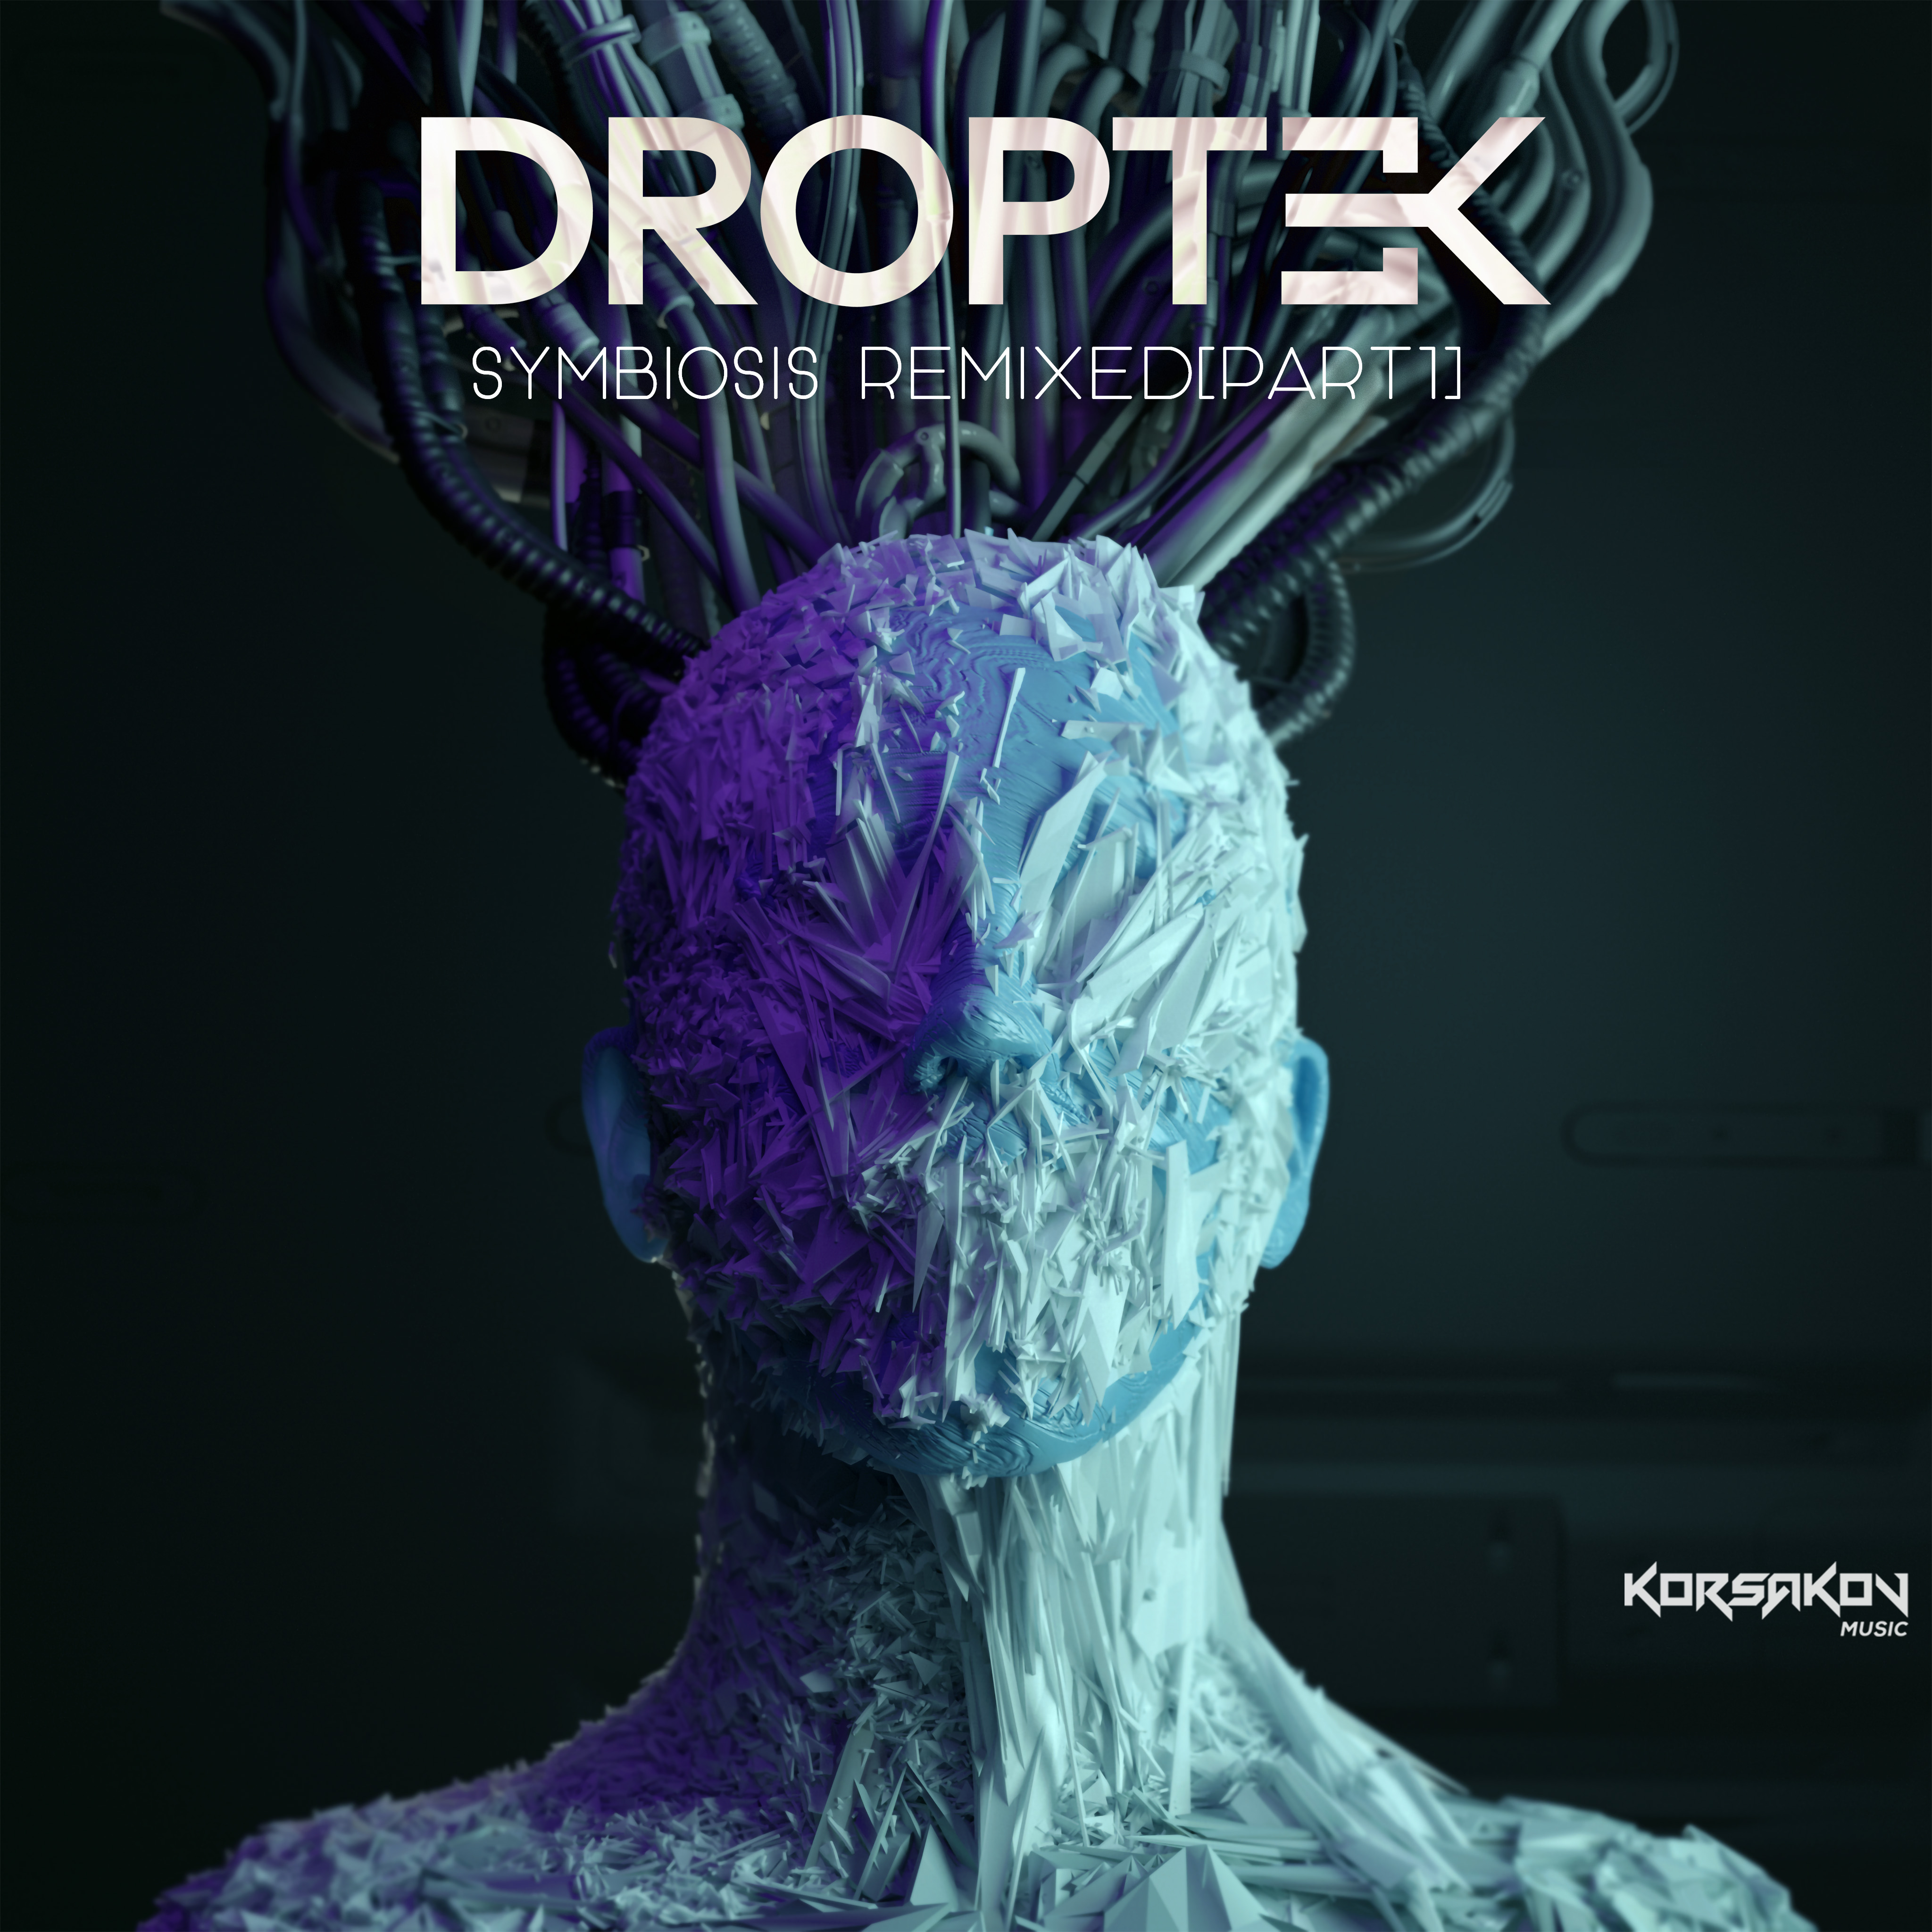 Droptek - Symbiosis Remixed Part 1 Image